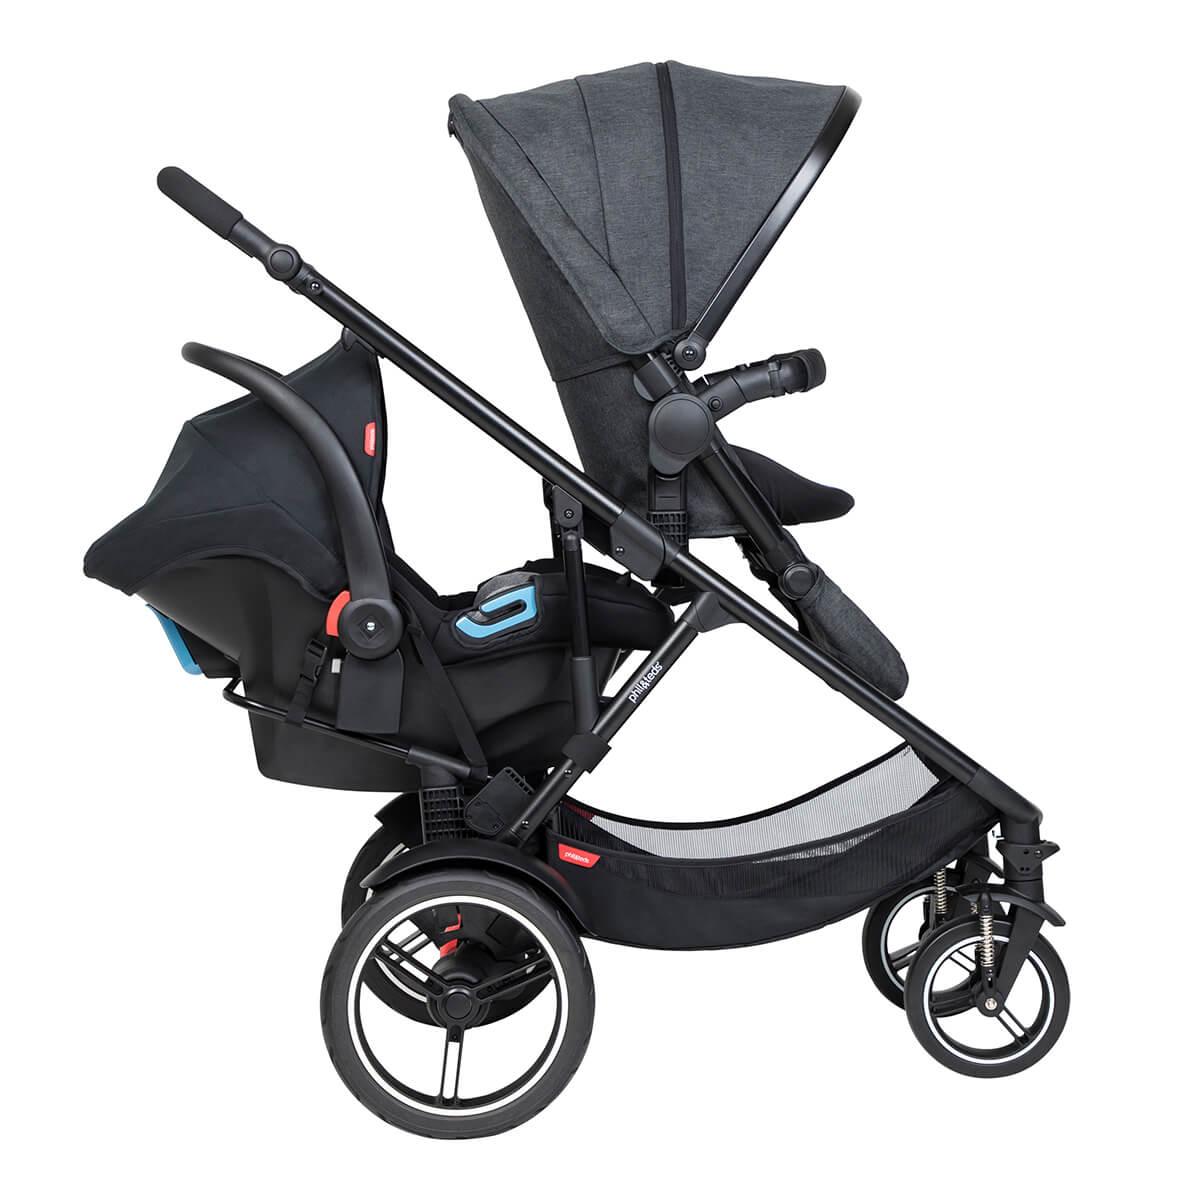 https://cdn.accentuate.io/4394883809385/19119322726505/philteds-voyager-buggy-in-forward-facing-mode-with-travel-system-in-the-rear-v1625708263793.jpg?1200x1200